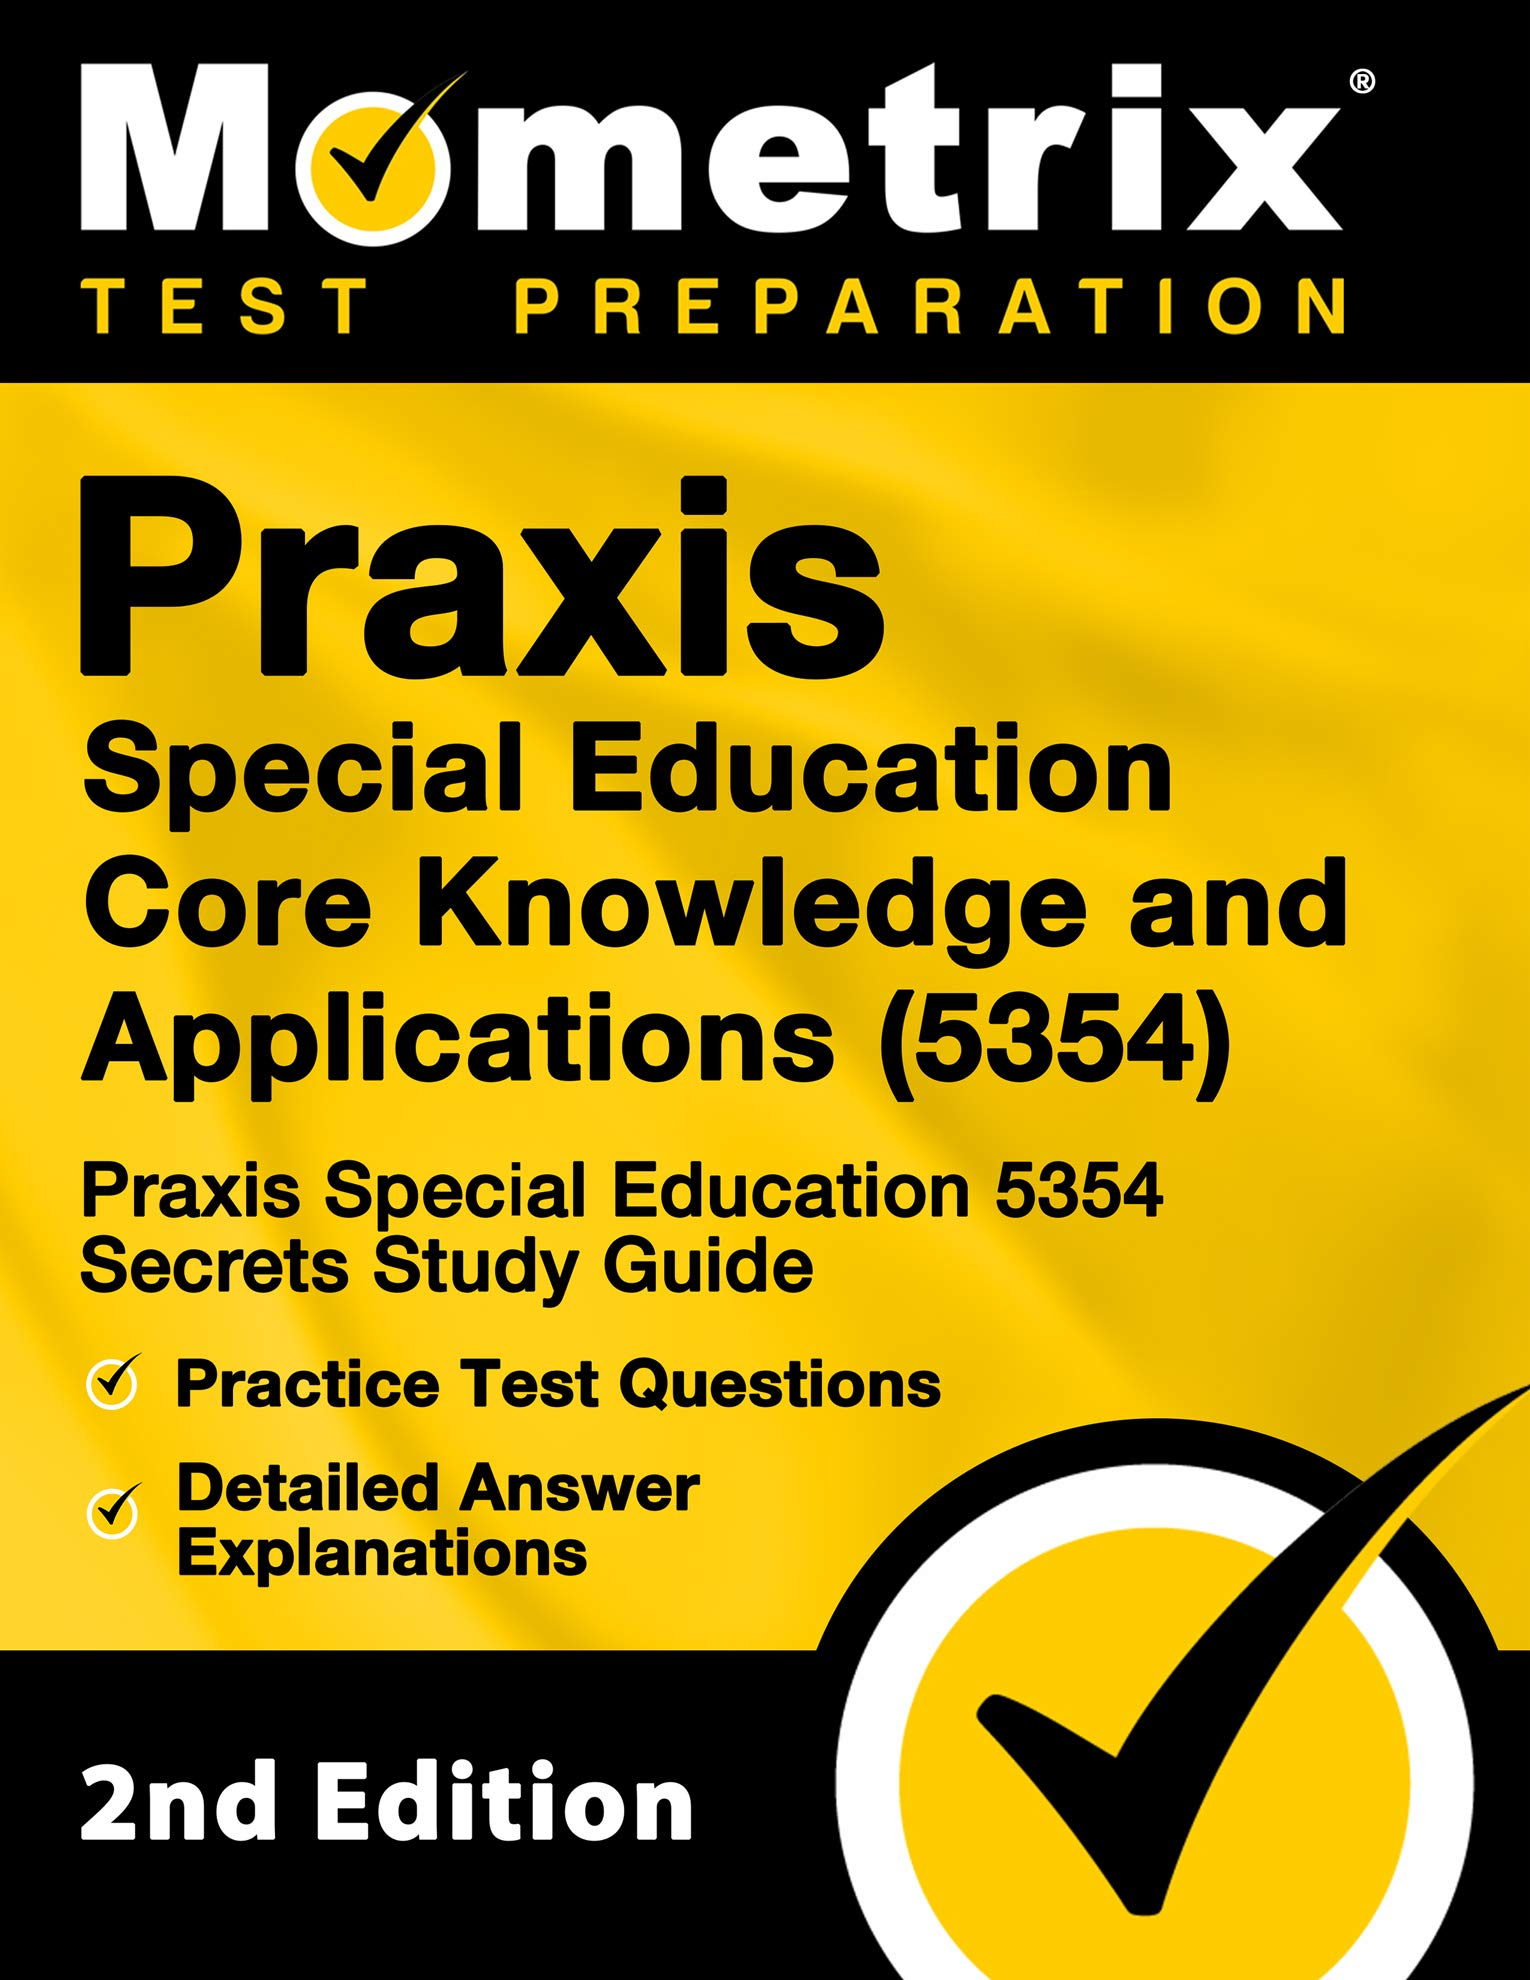 Praxis Special Education Core Knowledge and Applications (5354) - Praxis Special Education 5354 Secrets Study Guide, Practice Test Questions, Detailed Answer Explanations: [2nd Edition]